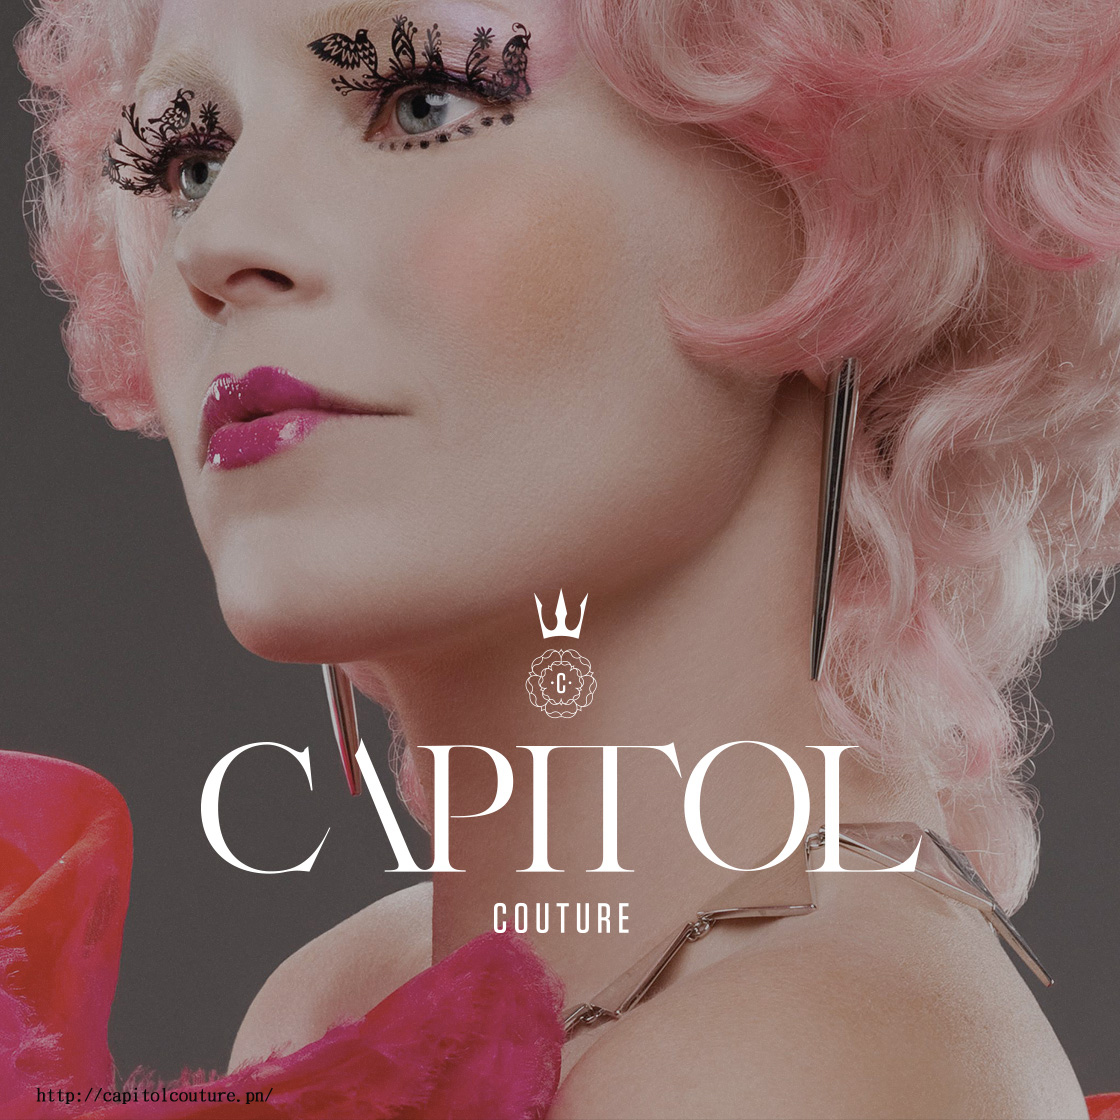 Paperself cilios de papel no filme Capitol Couture